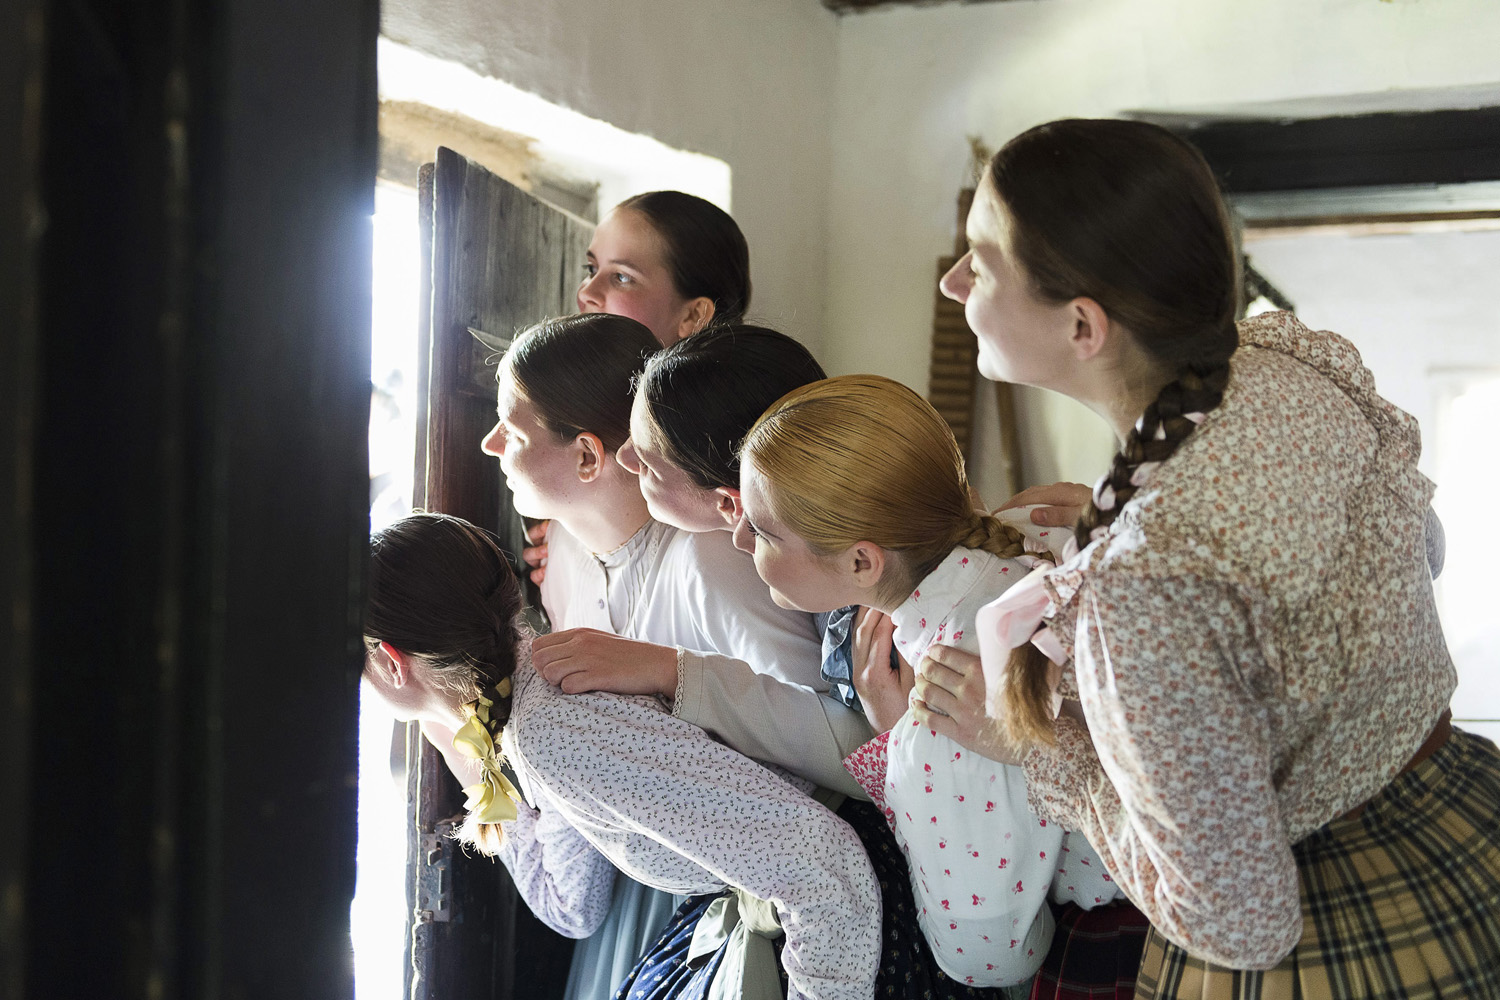 Dressed in folk costumes, young women peer out from a house waiting for male visitors amid performances of local Easter folk traditions at the Open Air Village Museum in Nyiregyhaza, northeast of Budapest, Hungary, April 21, 2014.